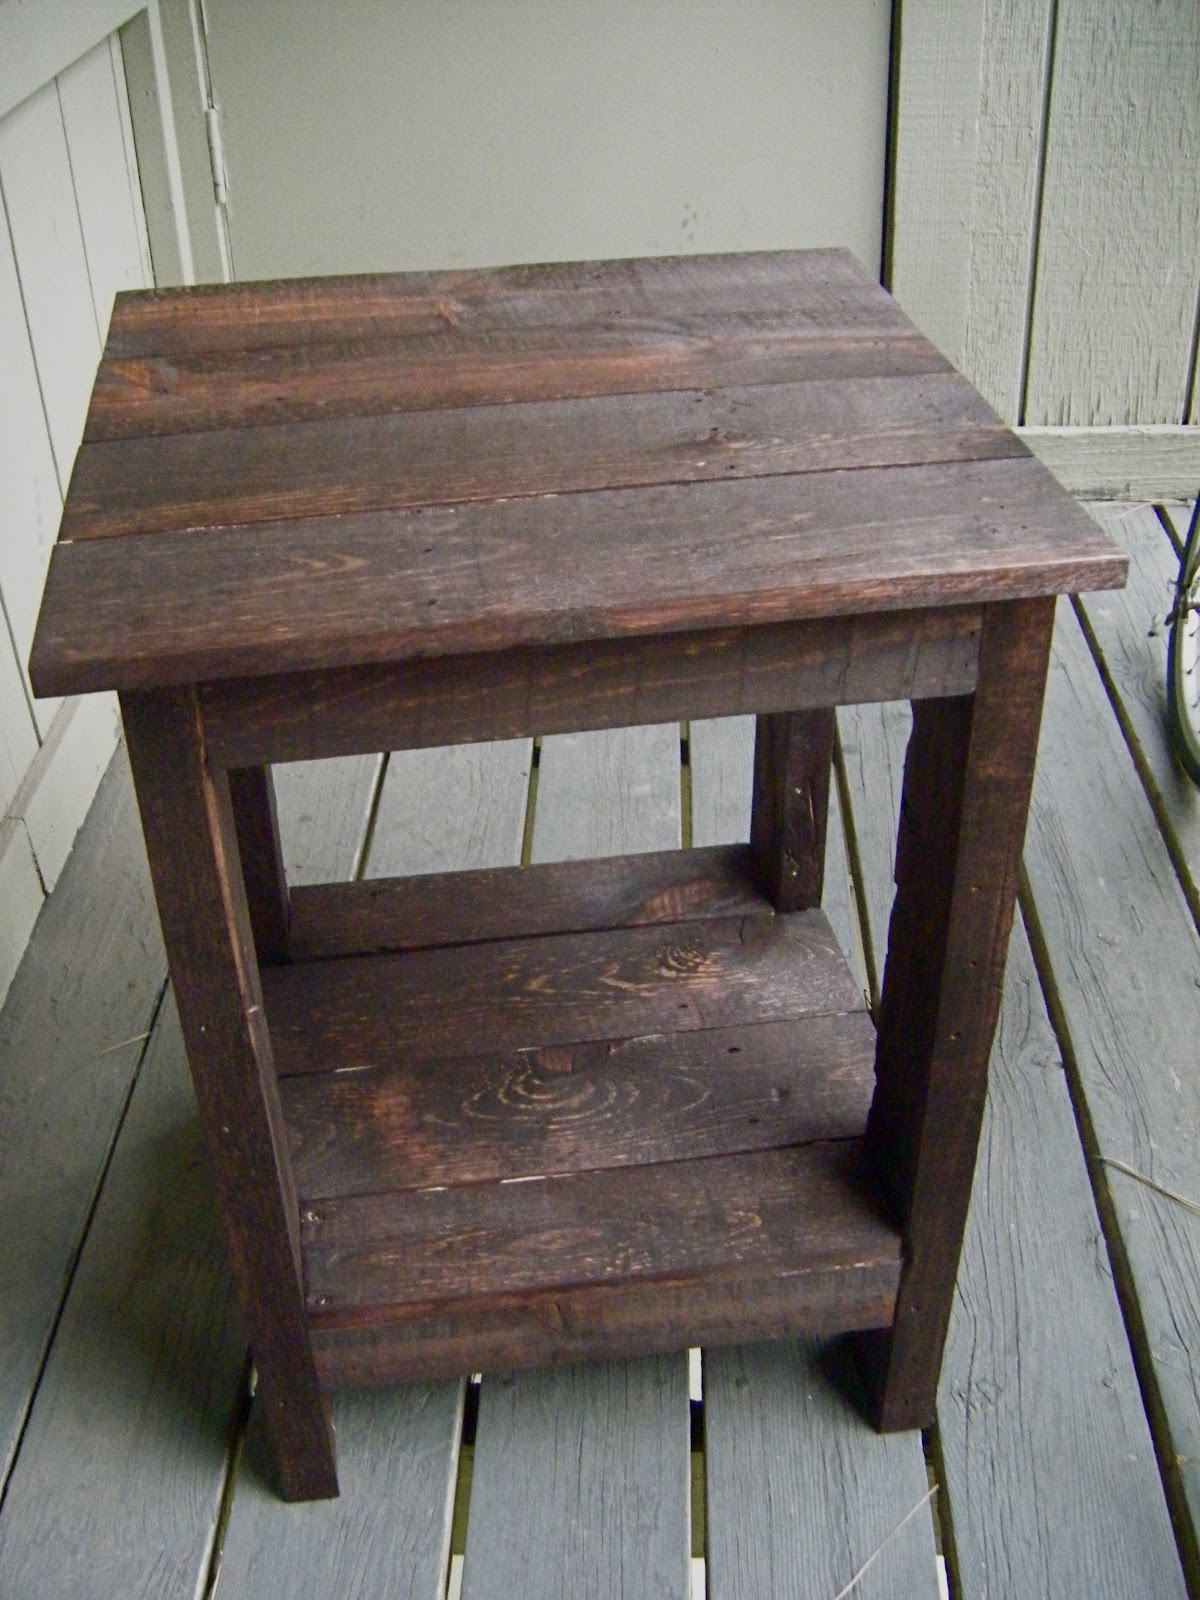 Eat live play side table pallet redux Table making ideas